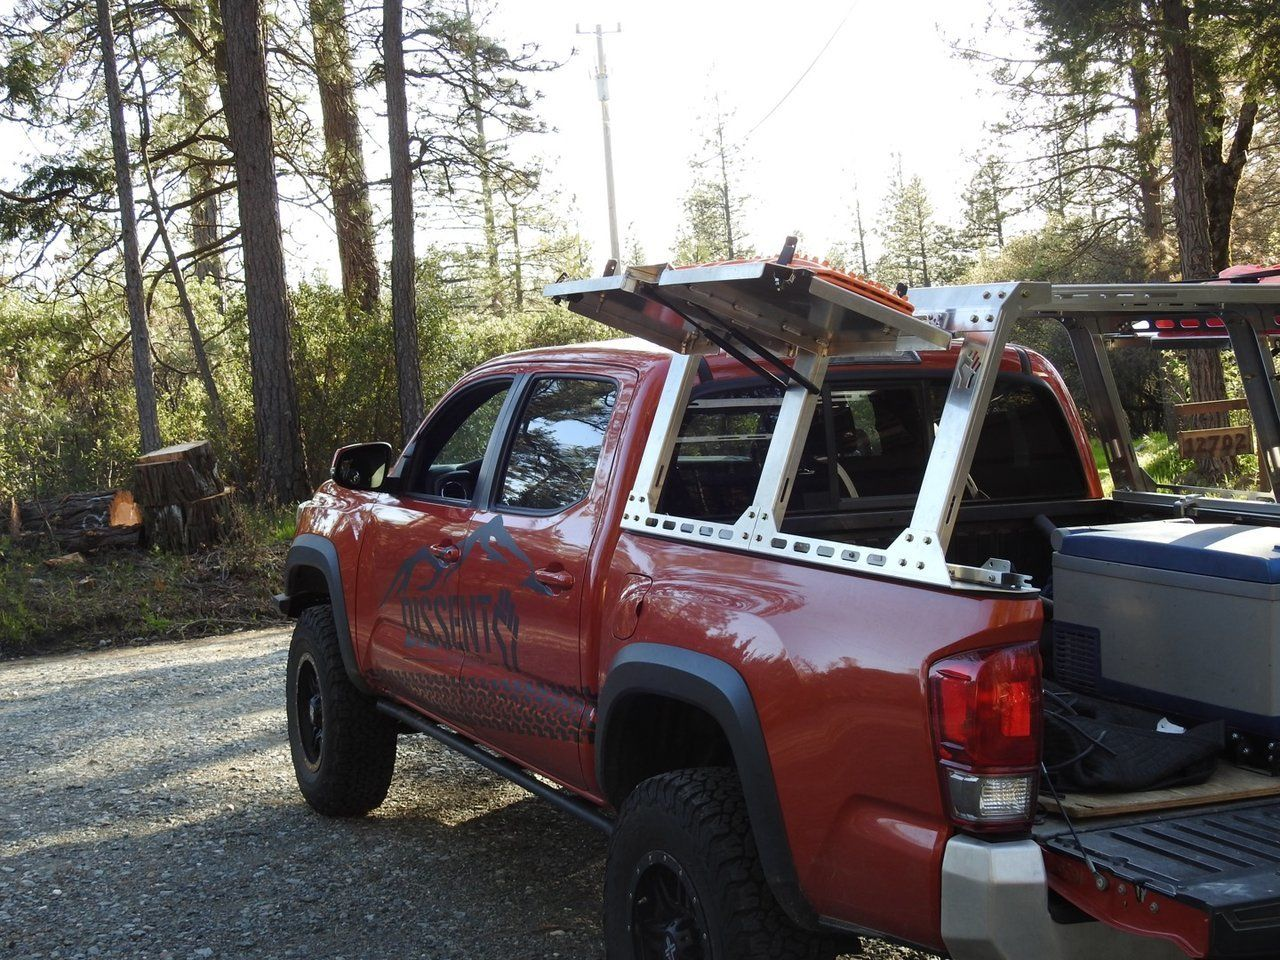 Dissent offroad aluminum rack system Hot rods cars